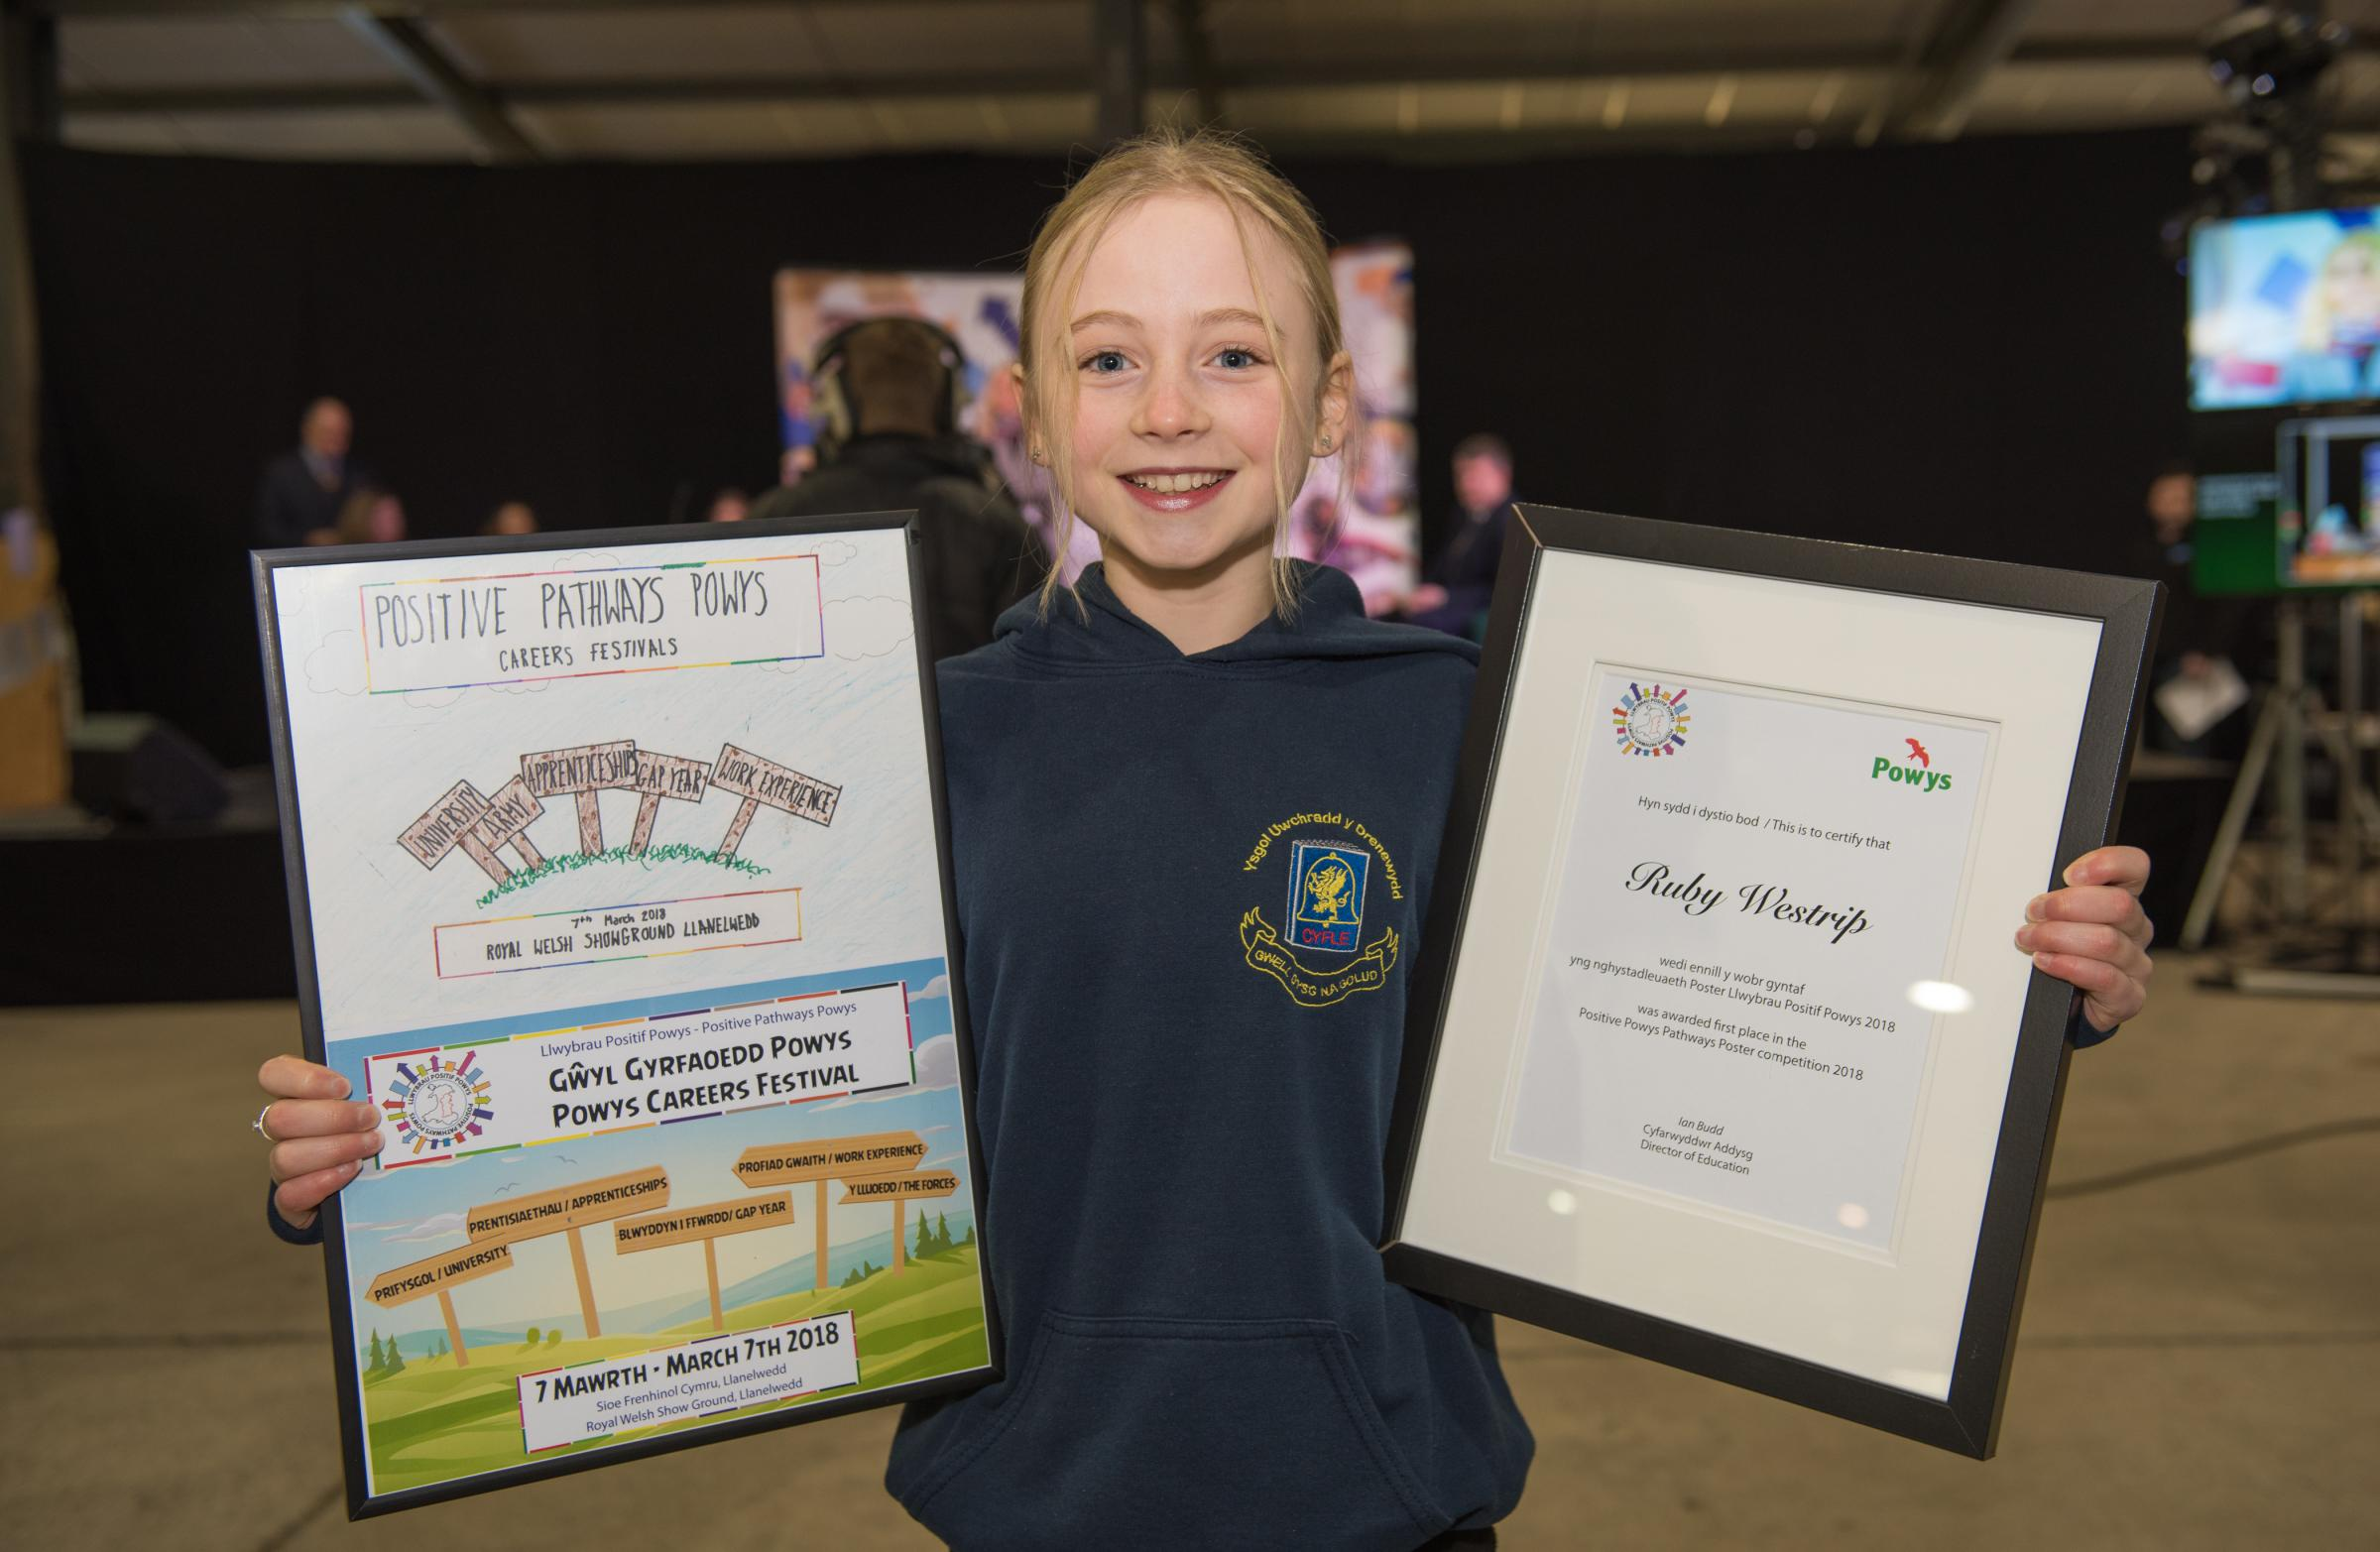 Ruby Westrip with her winning design and certificate.